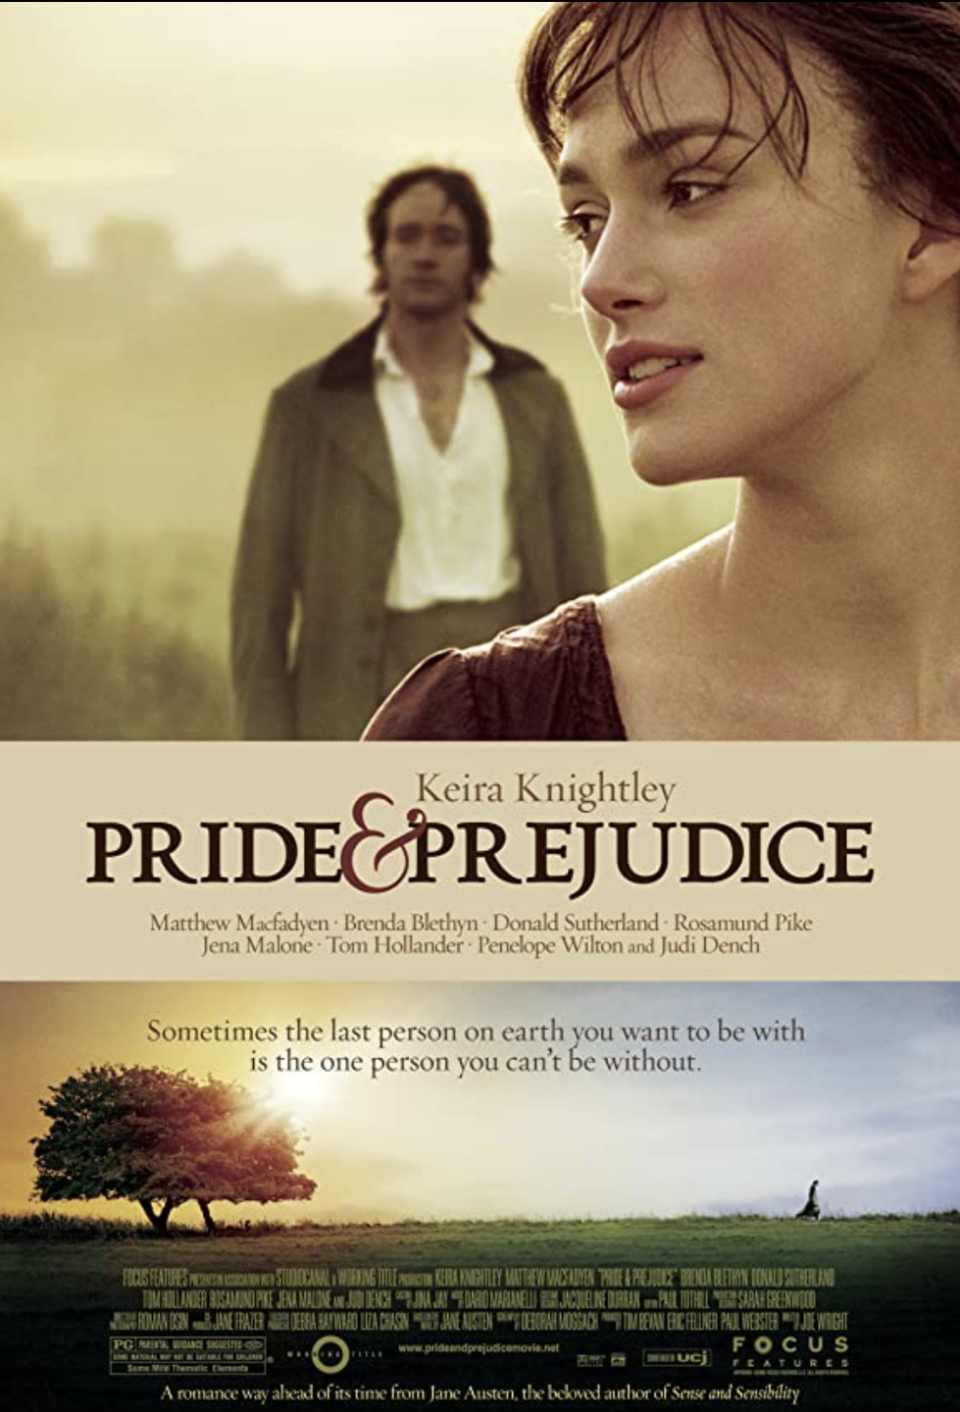 "<p>Jane Austen's classic tale is brought to life by Keira Knightley in this sweeping 19th century love story. It doesn't get much more romantic than this.</p><p><a class=""link rapid-noclick-resp"" href=""https://www.netflix.com/search?q=Pride+%26+Prejudice&jbv=70032594"" rel=""nofollow noopener"" target=""_blank"" data-ylk=""slk:STREAM NOW"">STREAM NOW</a></p>"